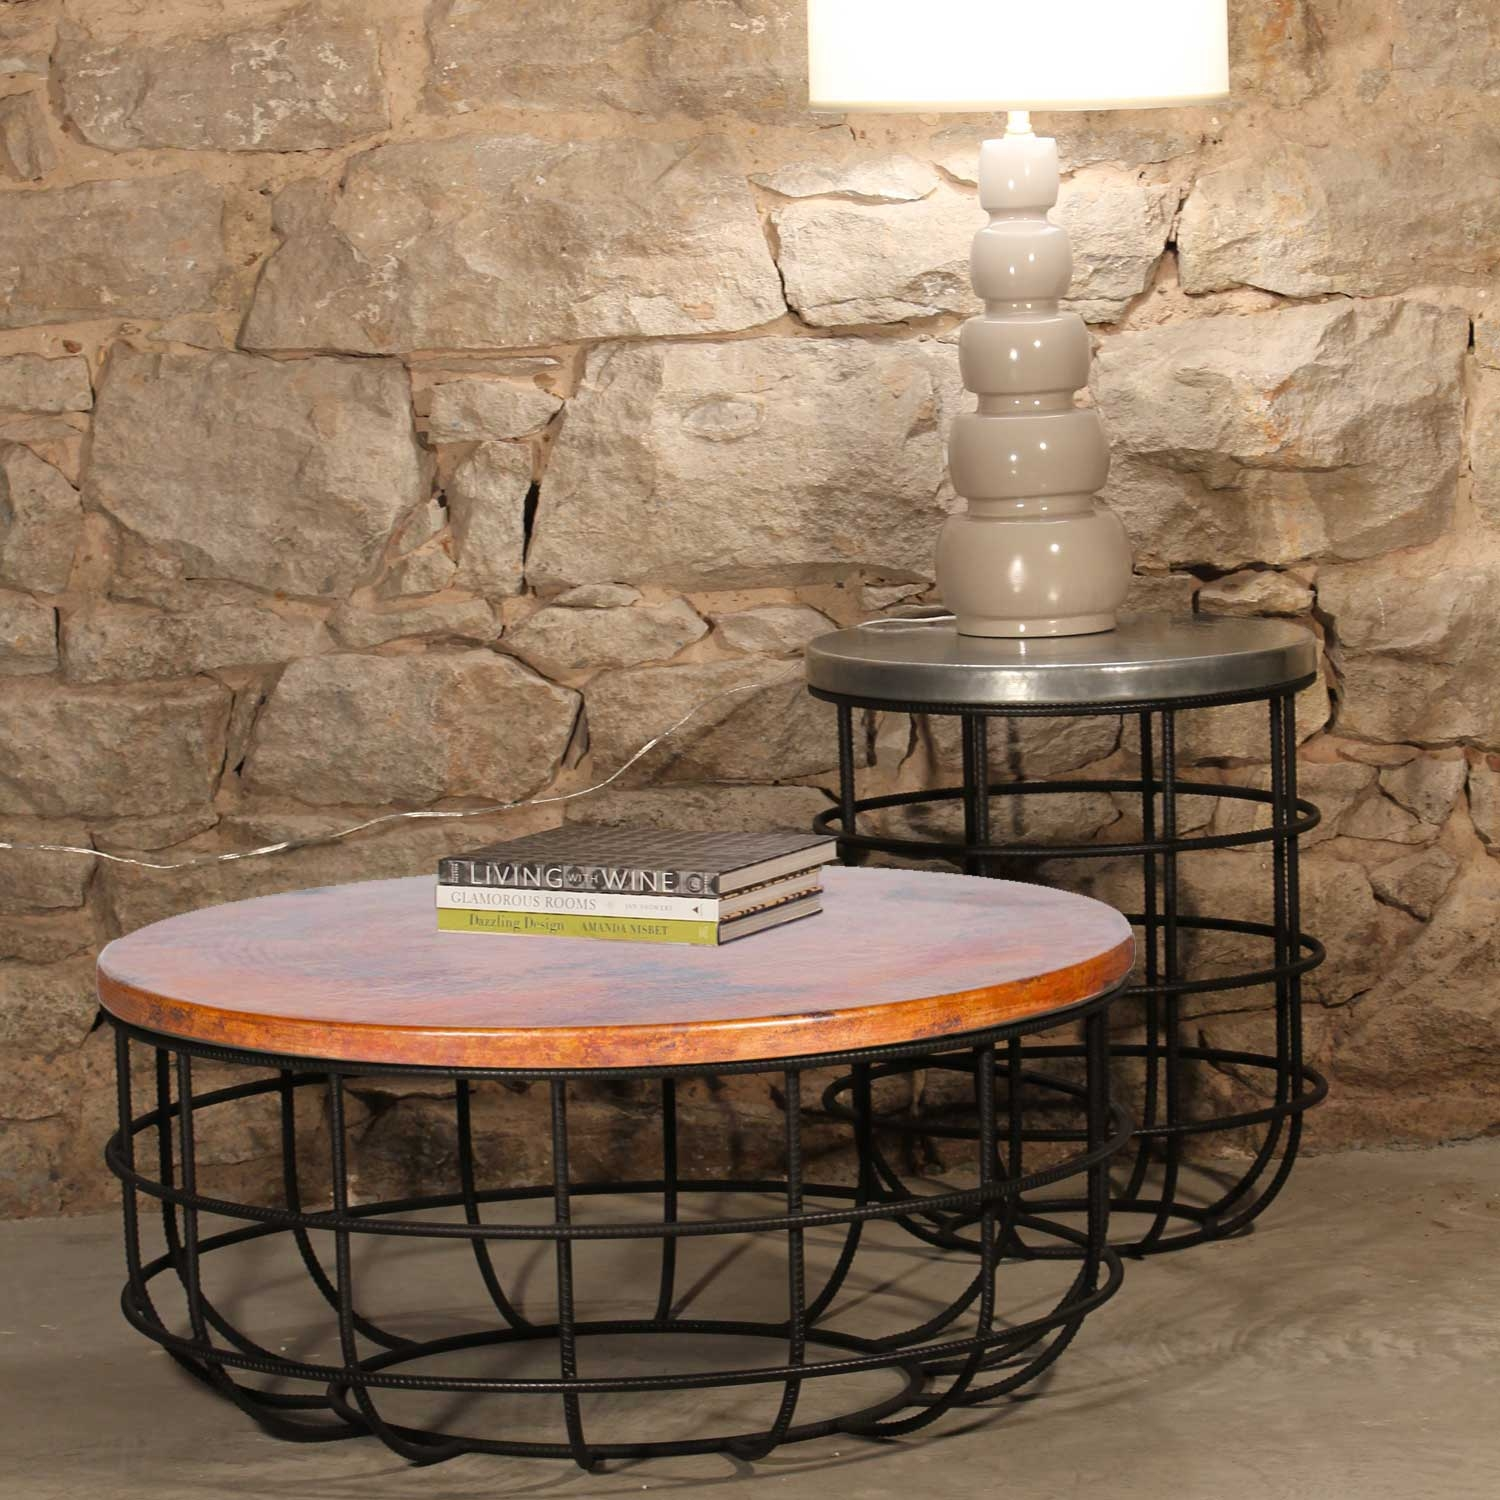 Copper Top Outdoor Coffee Table: TWI-PM-2M5-F-543A-7.jpg